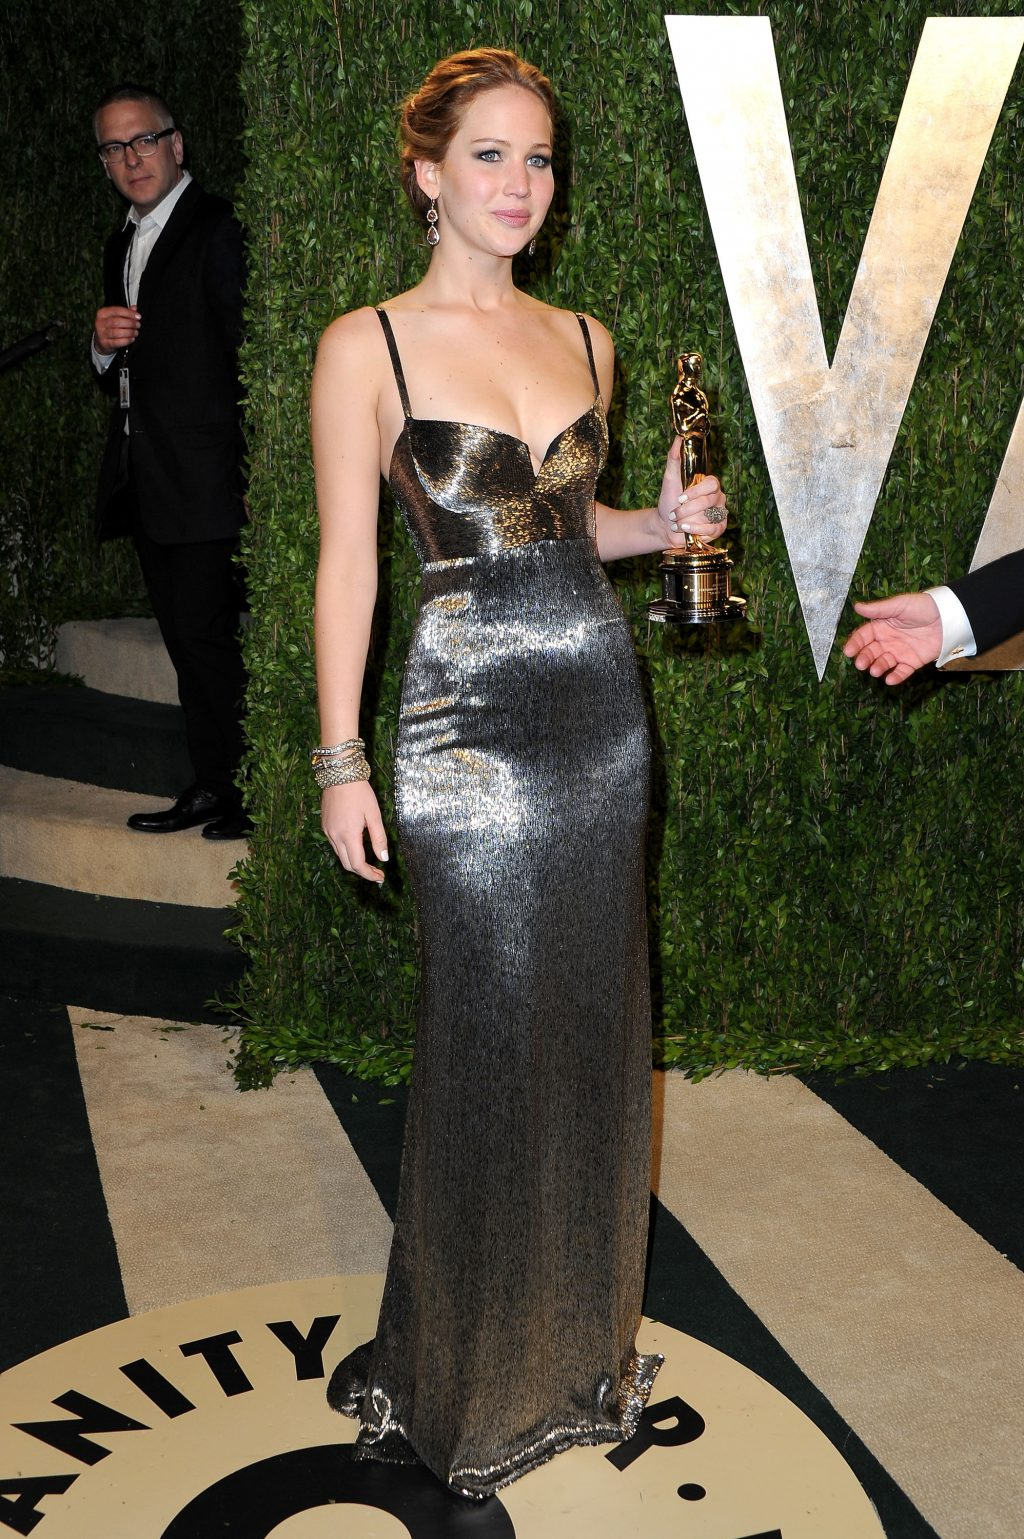 calvin-klein-vanity-fair-oscar-party-2013.jpg